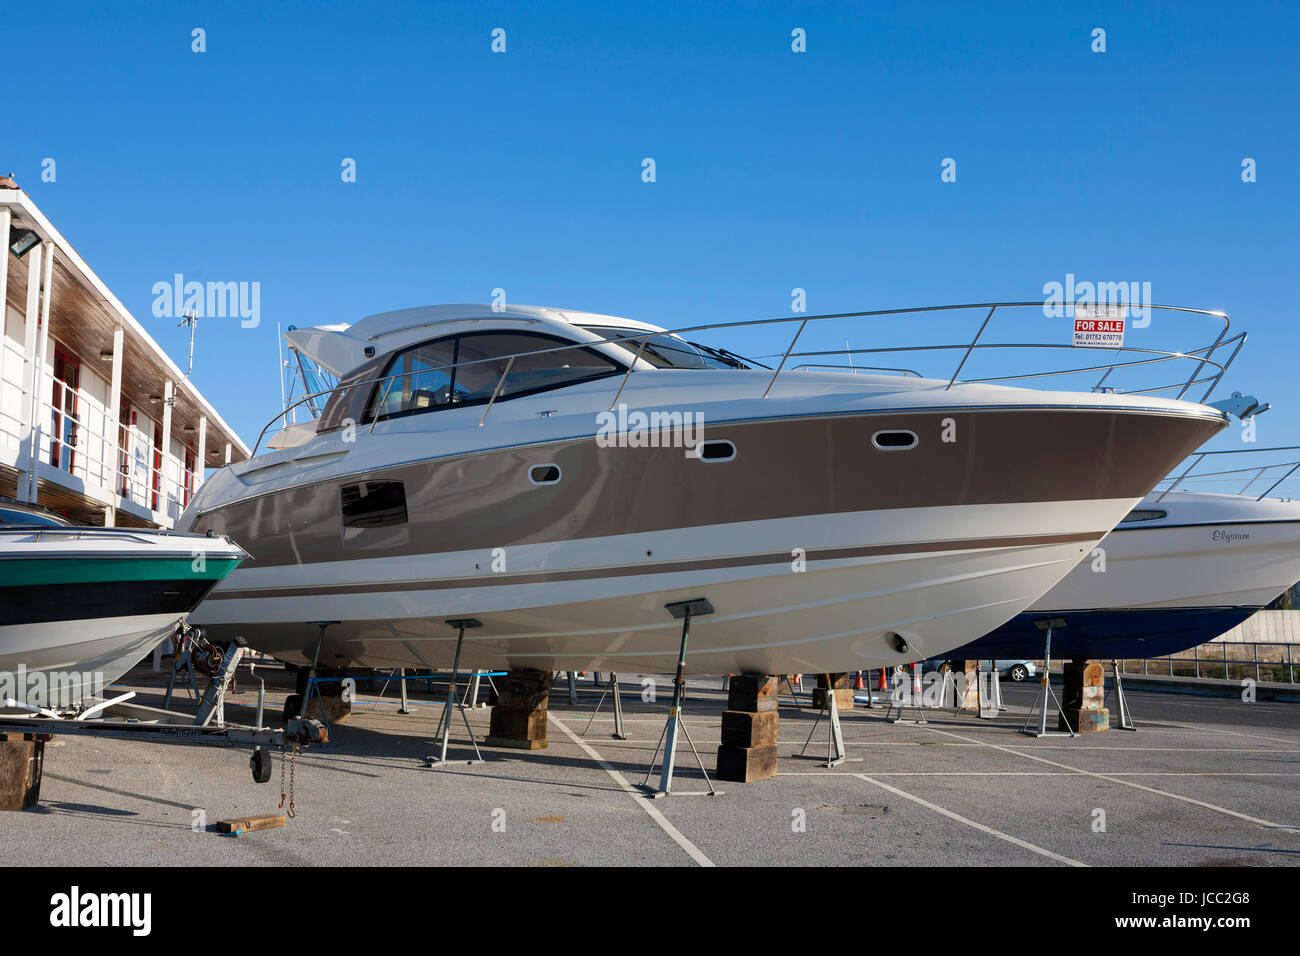 large luxury motor boat yacht in dry dock marina on stilts for sale, Plymouth, Devon, England, UK - Stock Image